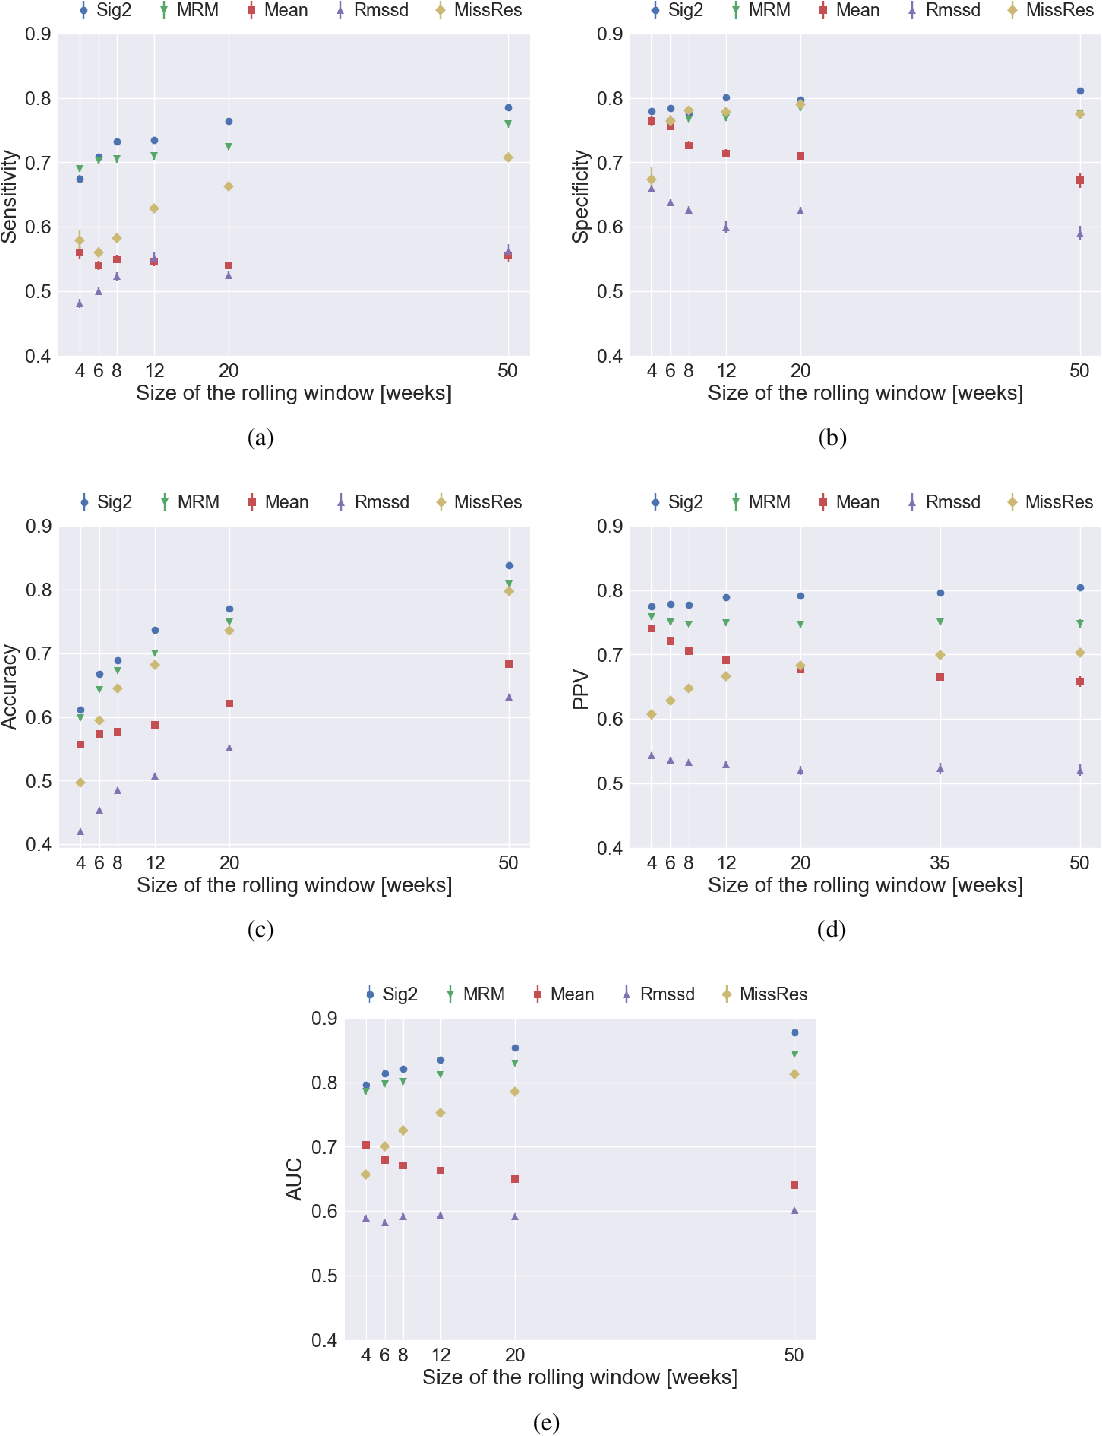 Figure 3 for Detecting early signs of depressive and manic episodes in patients with bipolar disorder using the signature-based model